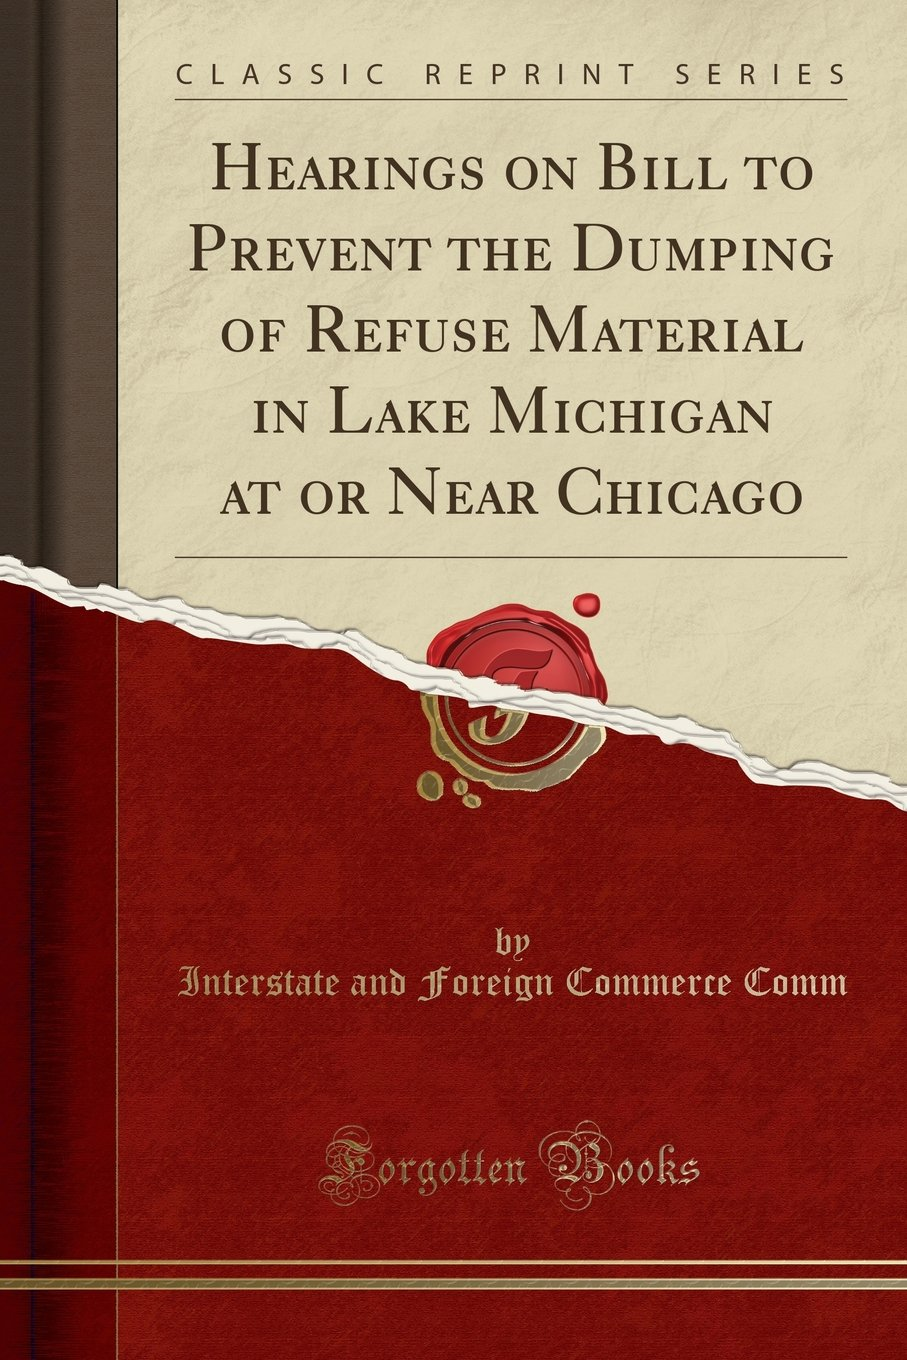 Hearings on Bill to Prevent the Dumping of Refuse Material in Lake Michigan at or Near Chicago (Classic Reprint) ebook